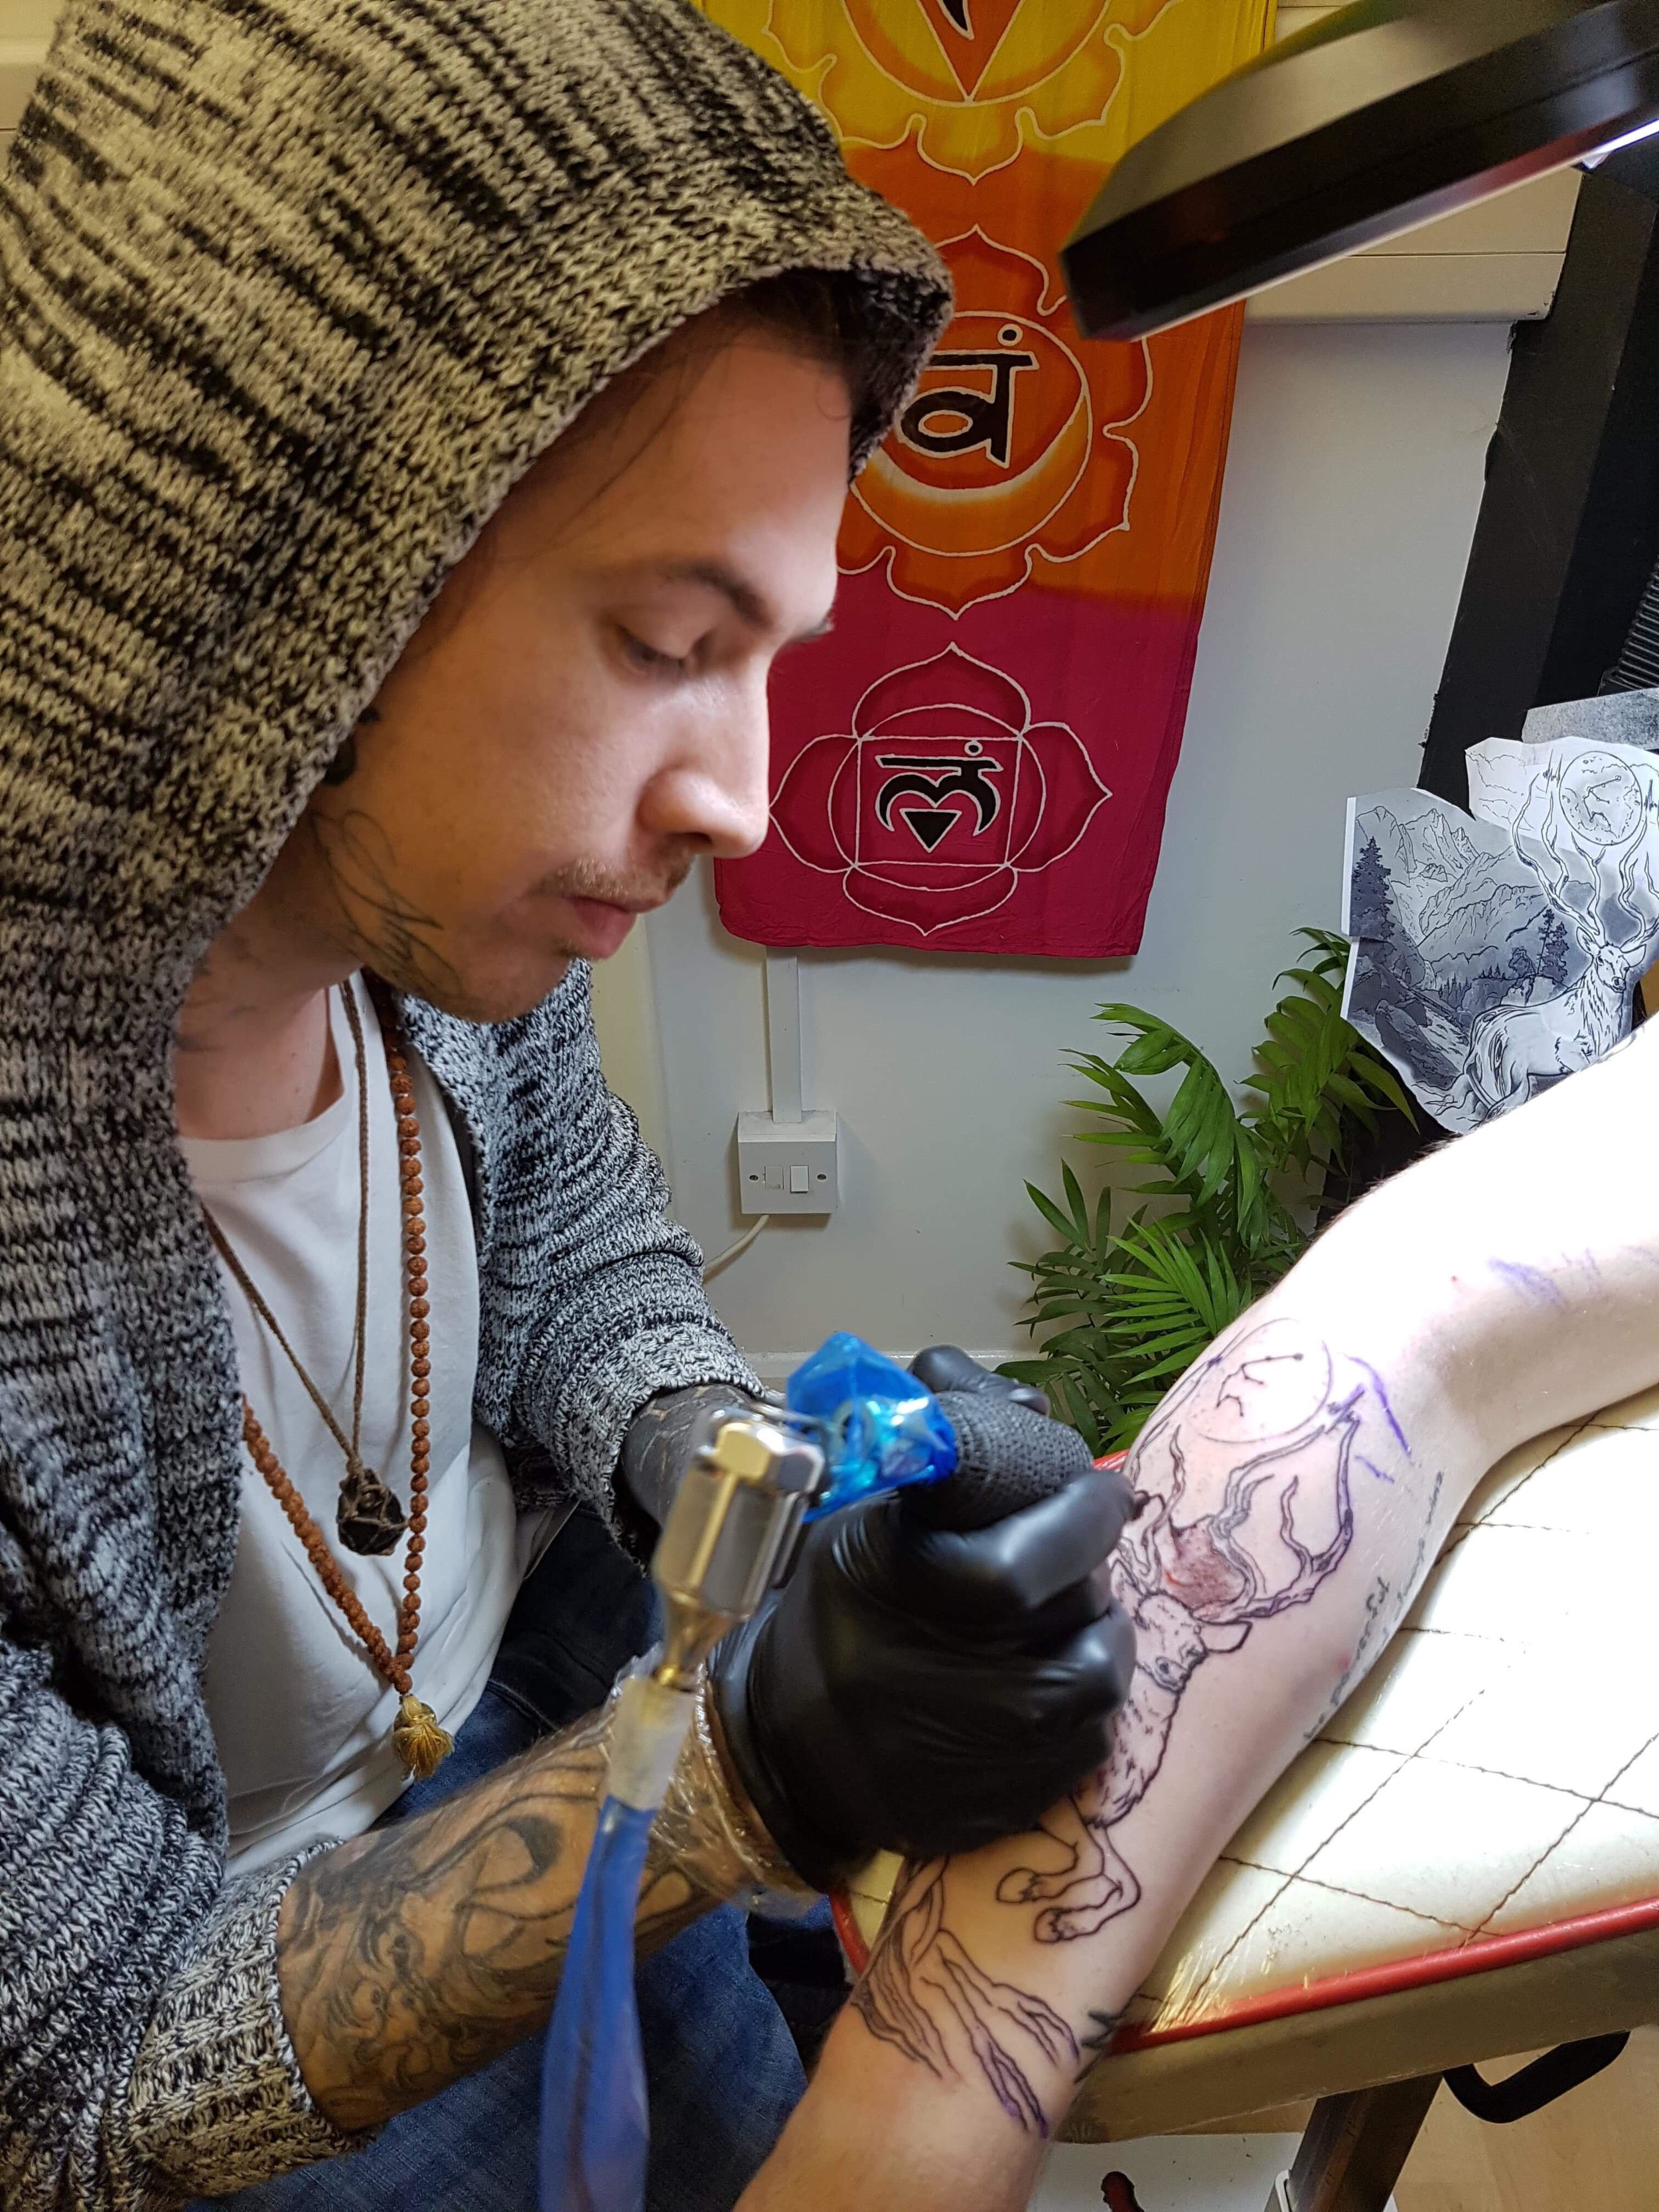 Stuart Tasker - Stuart has been tattooing professionally 8 years. He enjoys all styles but when given the opportunity to do his own style, he goes for black work, water color style with some deep thoughts entwined with the design. Click his photo to check out his work!